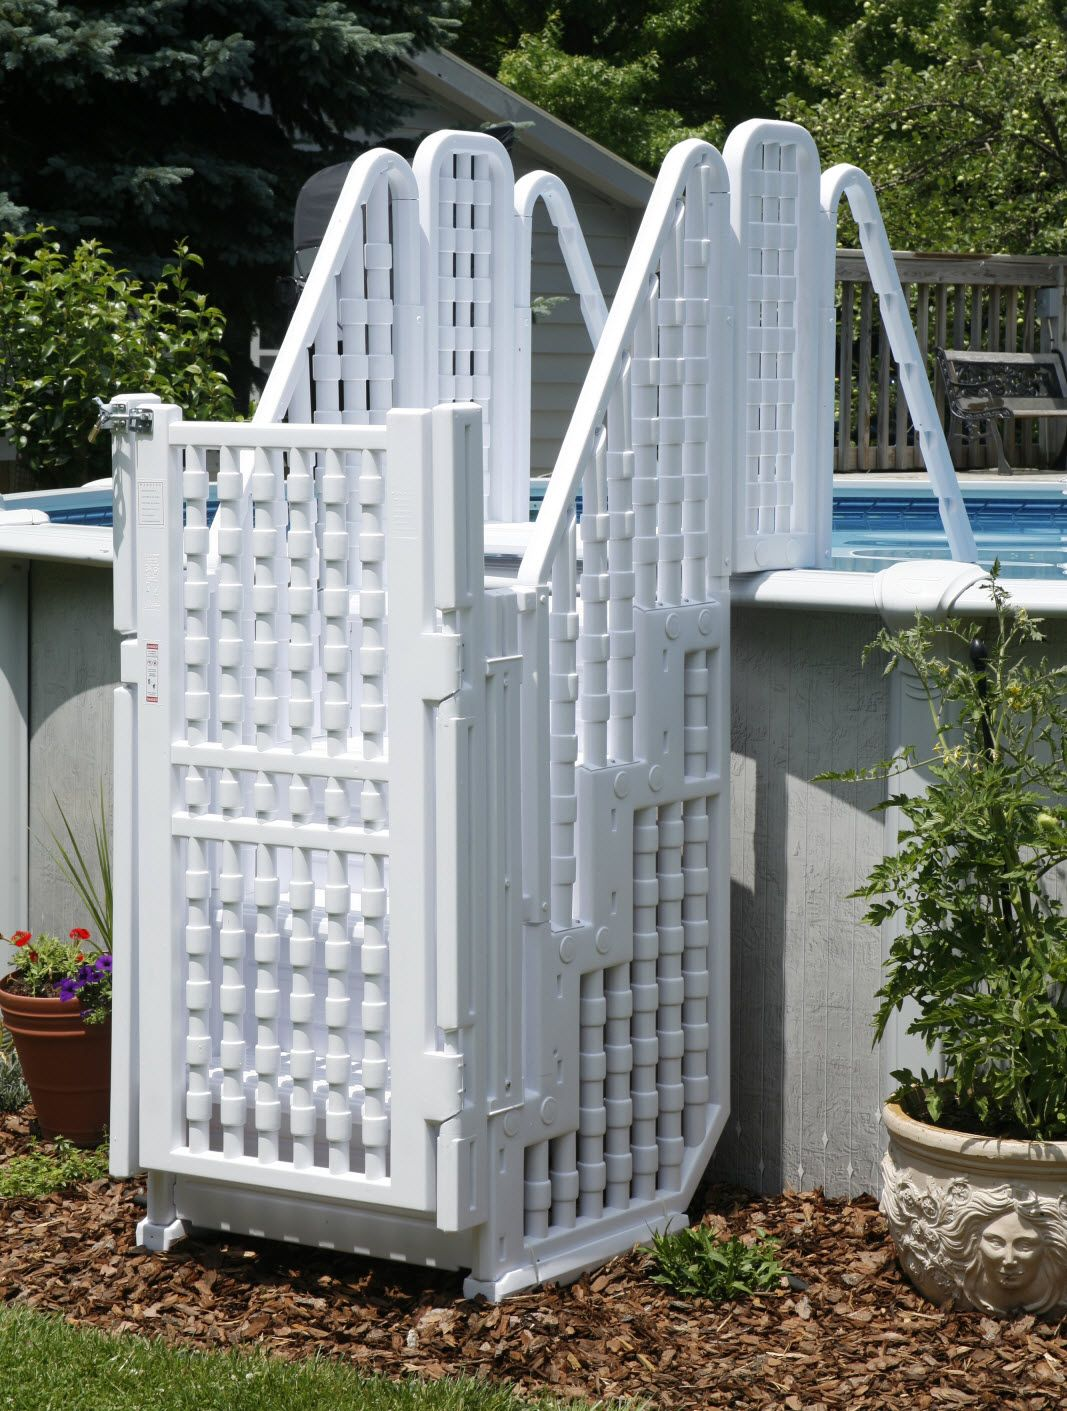 new ex large above ground kid safe swimming pool steps ladder w gate lock